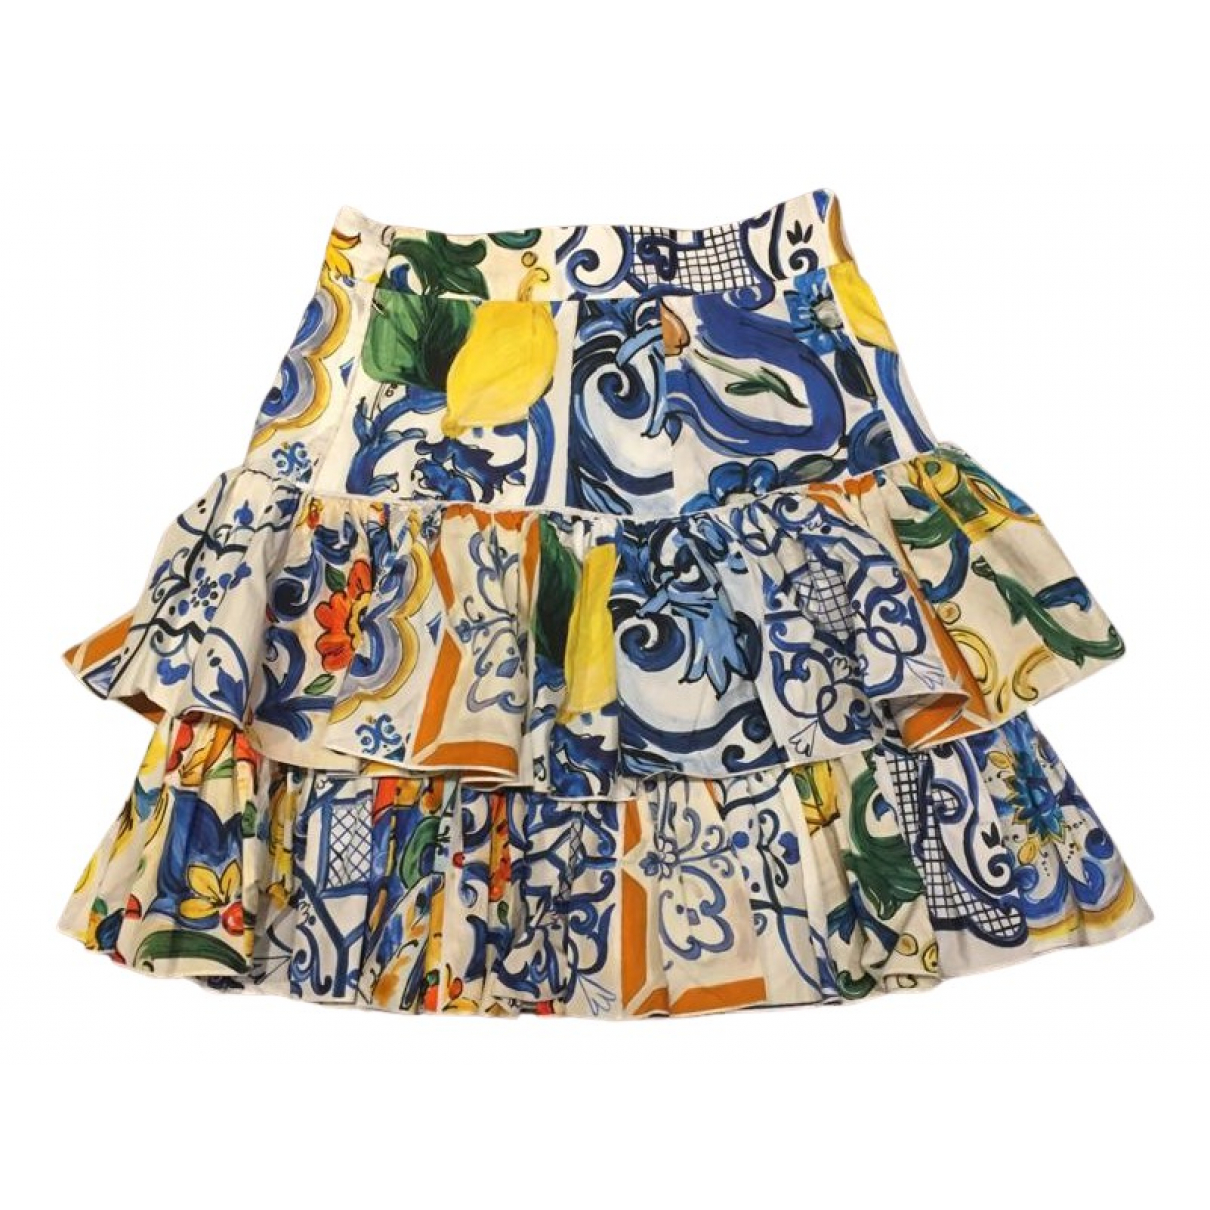 Dolce & Gabbana N Multicolour Cotton skirt for Women 40 IT